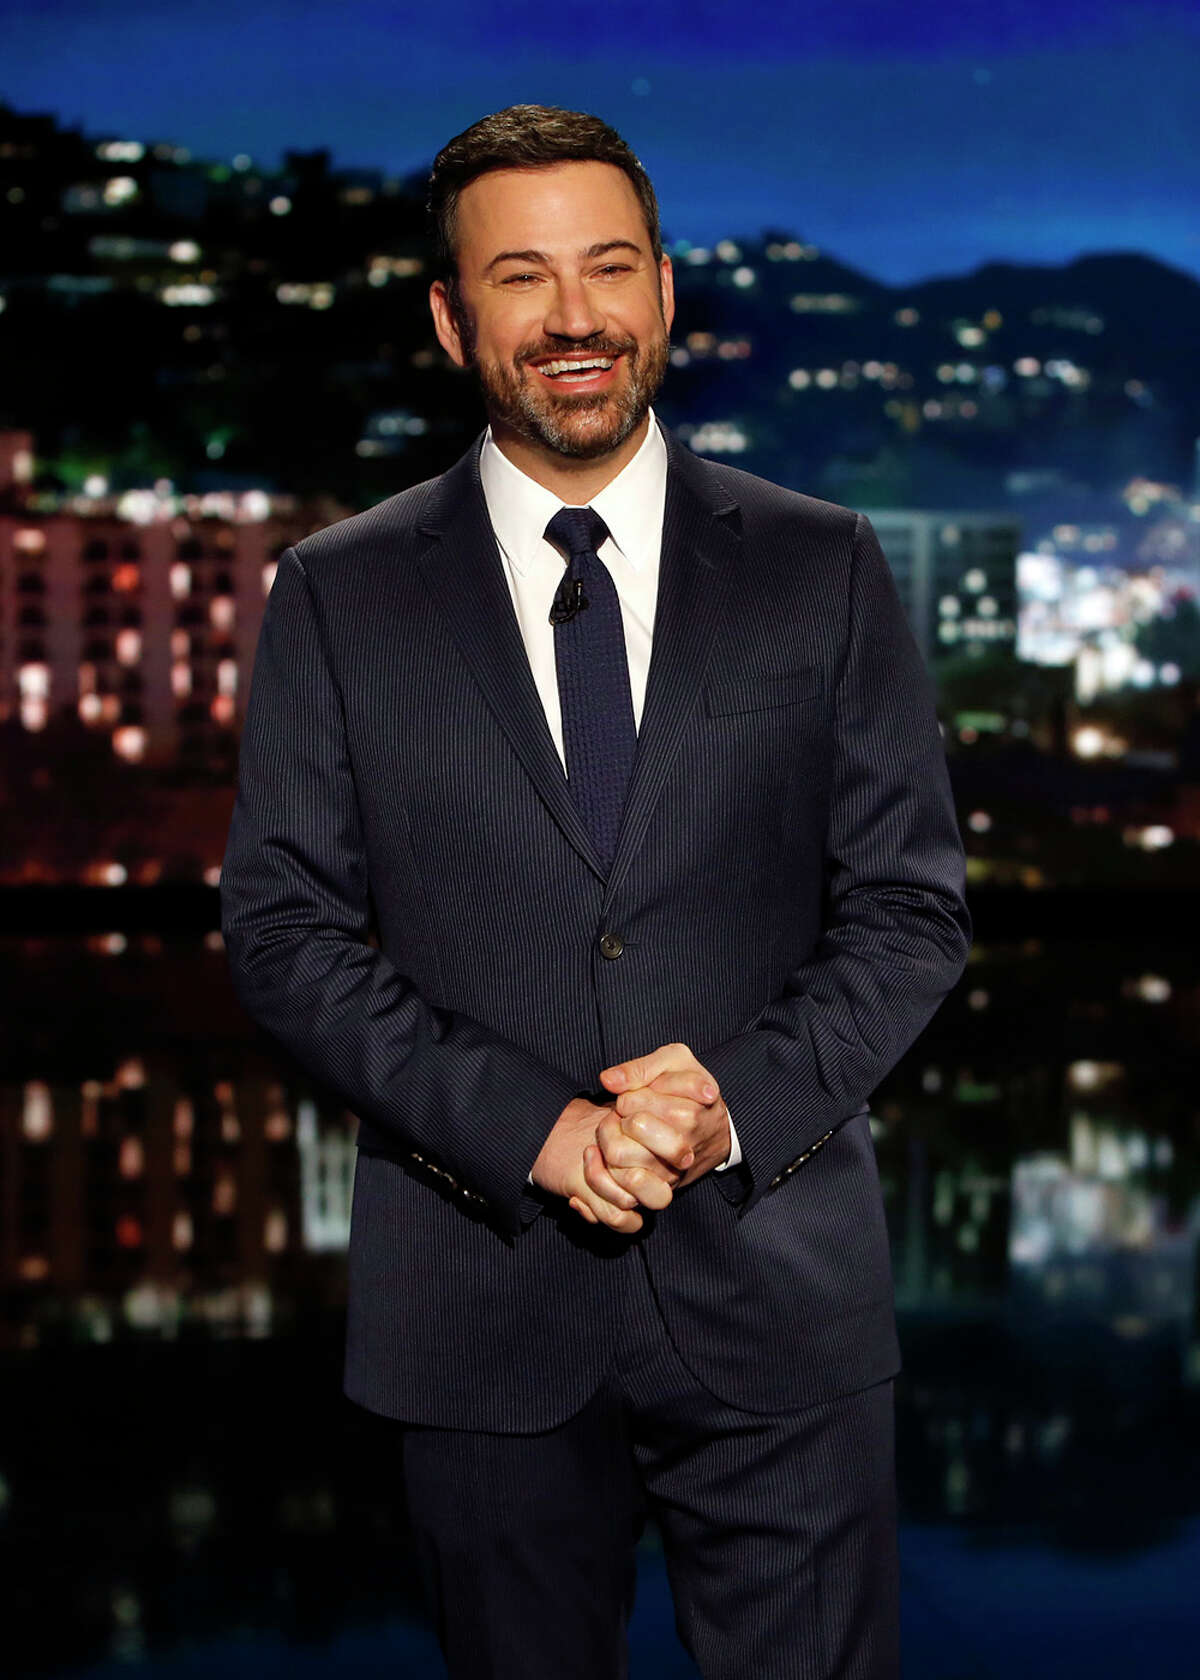 Jimmy Kimmel devoted the most time to Trump's comments on Thursday night.